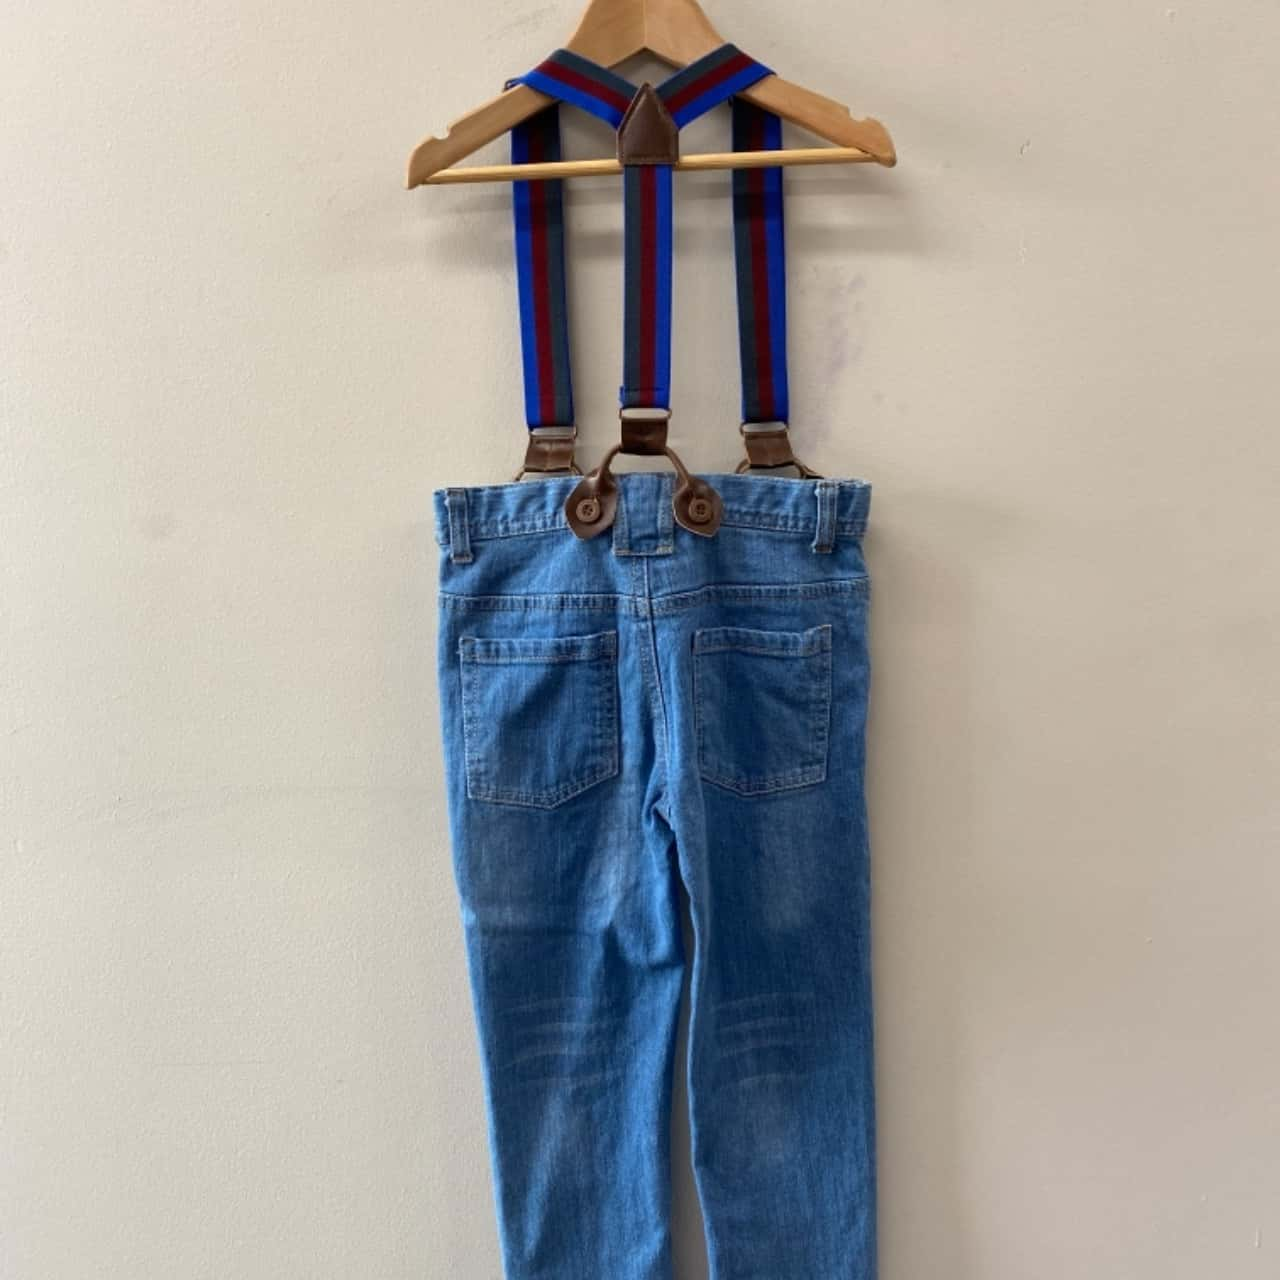 Target Kids Size 6 Overall Pants Blue/Striped Denim Look